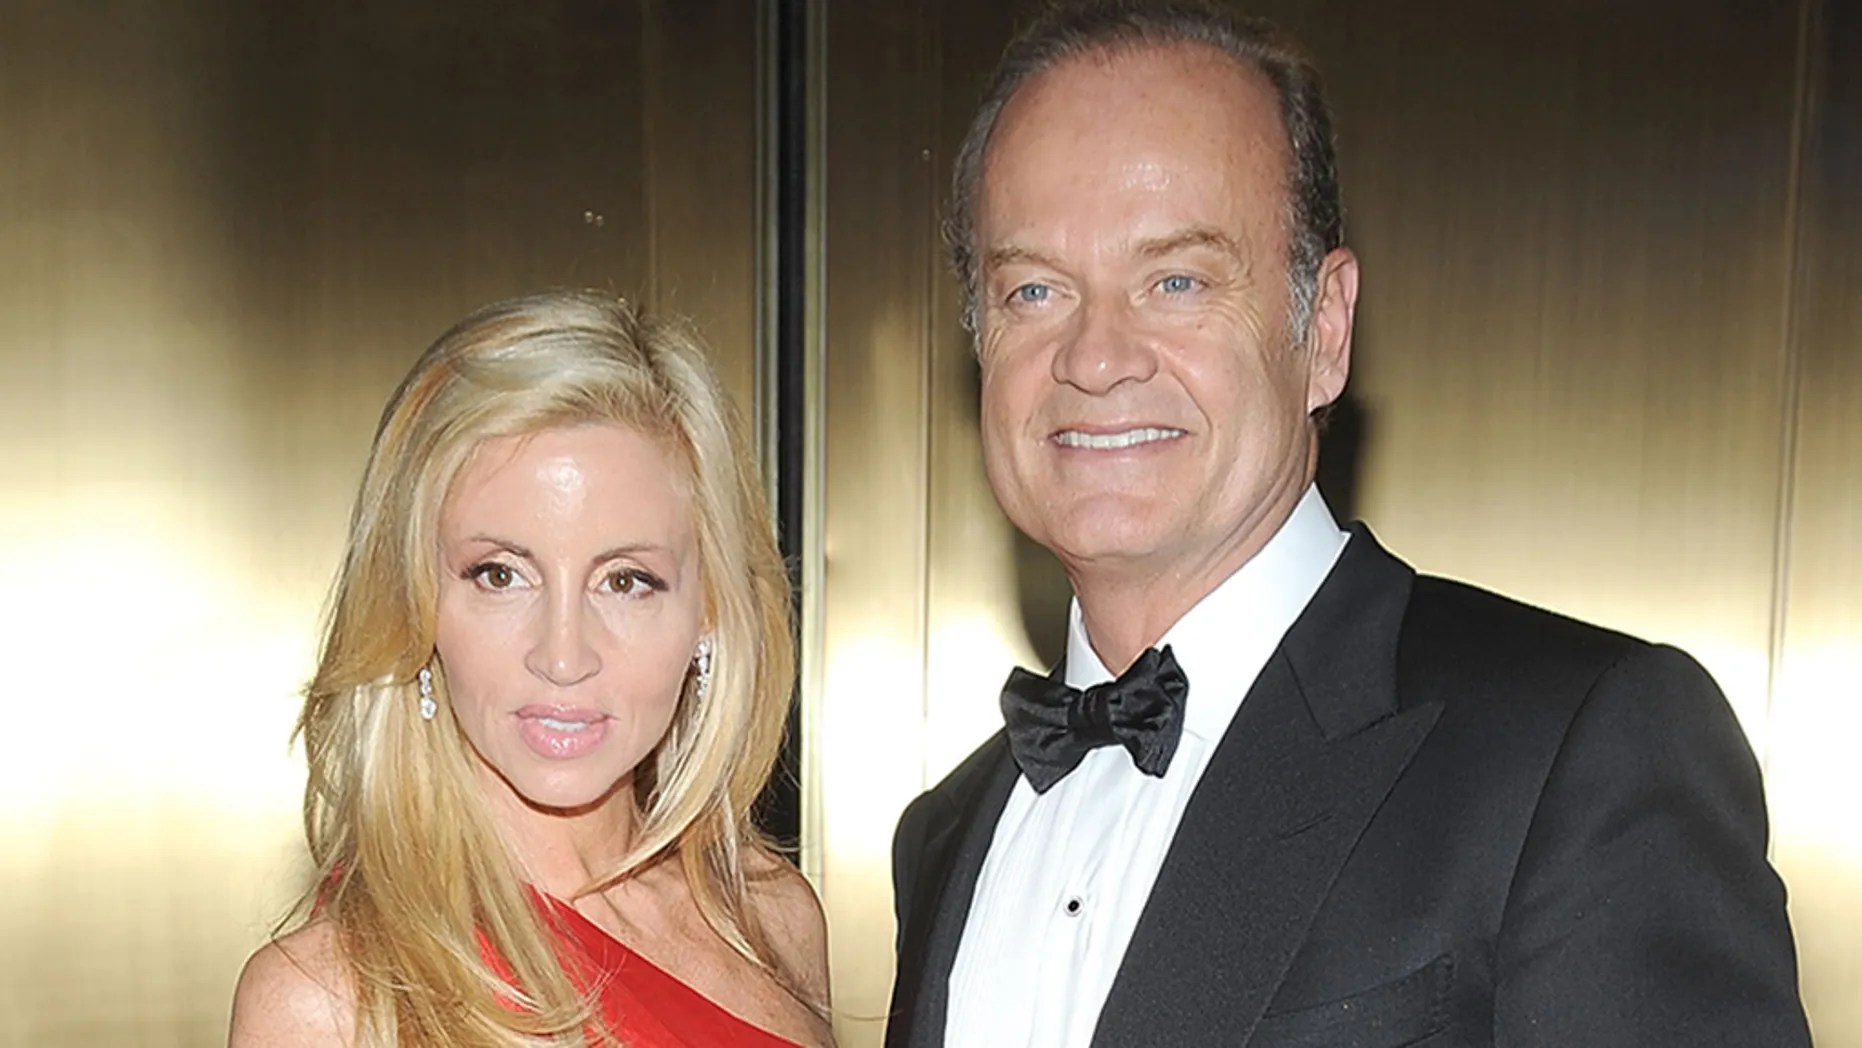 Kelsey Grammer, right with then-wife Camille Grammer at the 64th Annual Tony Awards at Radio City Music Hall on June 13, 2010 in New York City.